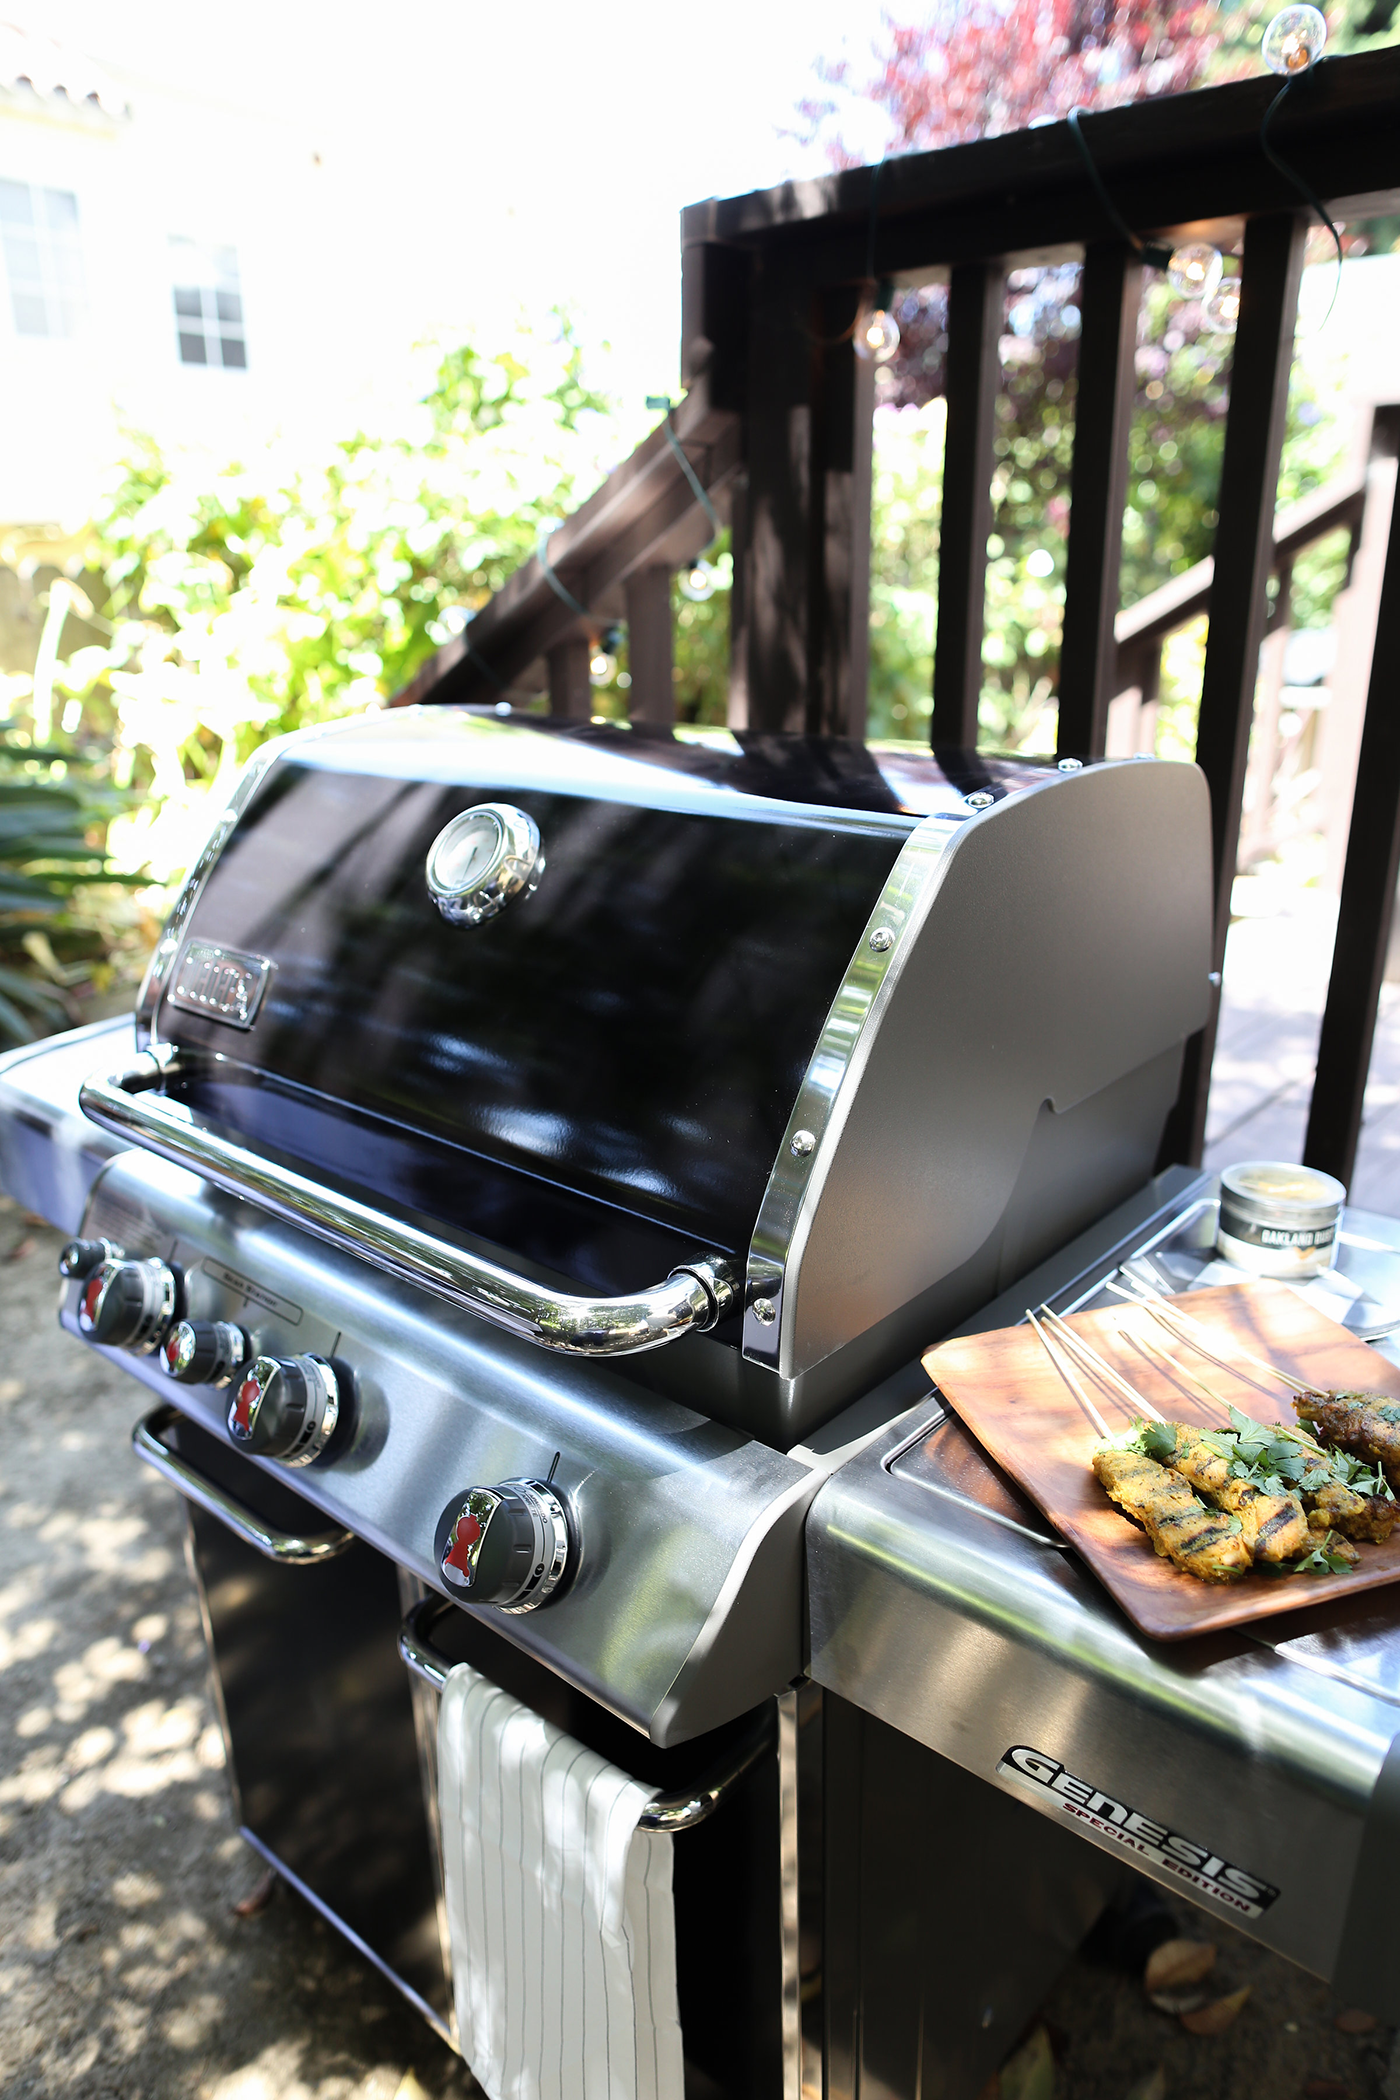 Get your backyard ready for BBQ season just in time for summer! Copy Cat Chic shows you an easy way to throw a barbecue party for friends & family with Ace Hardware and Weber Grills.